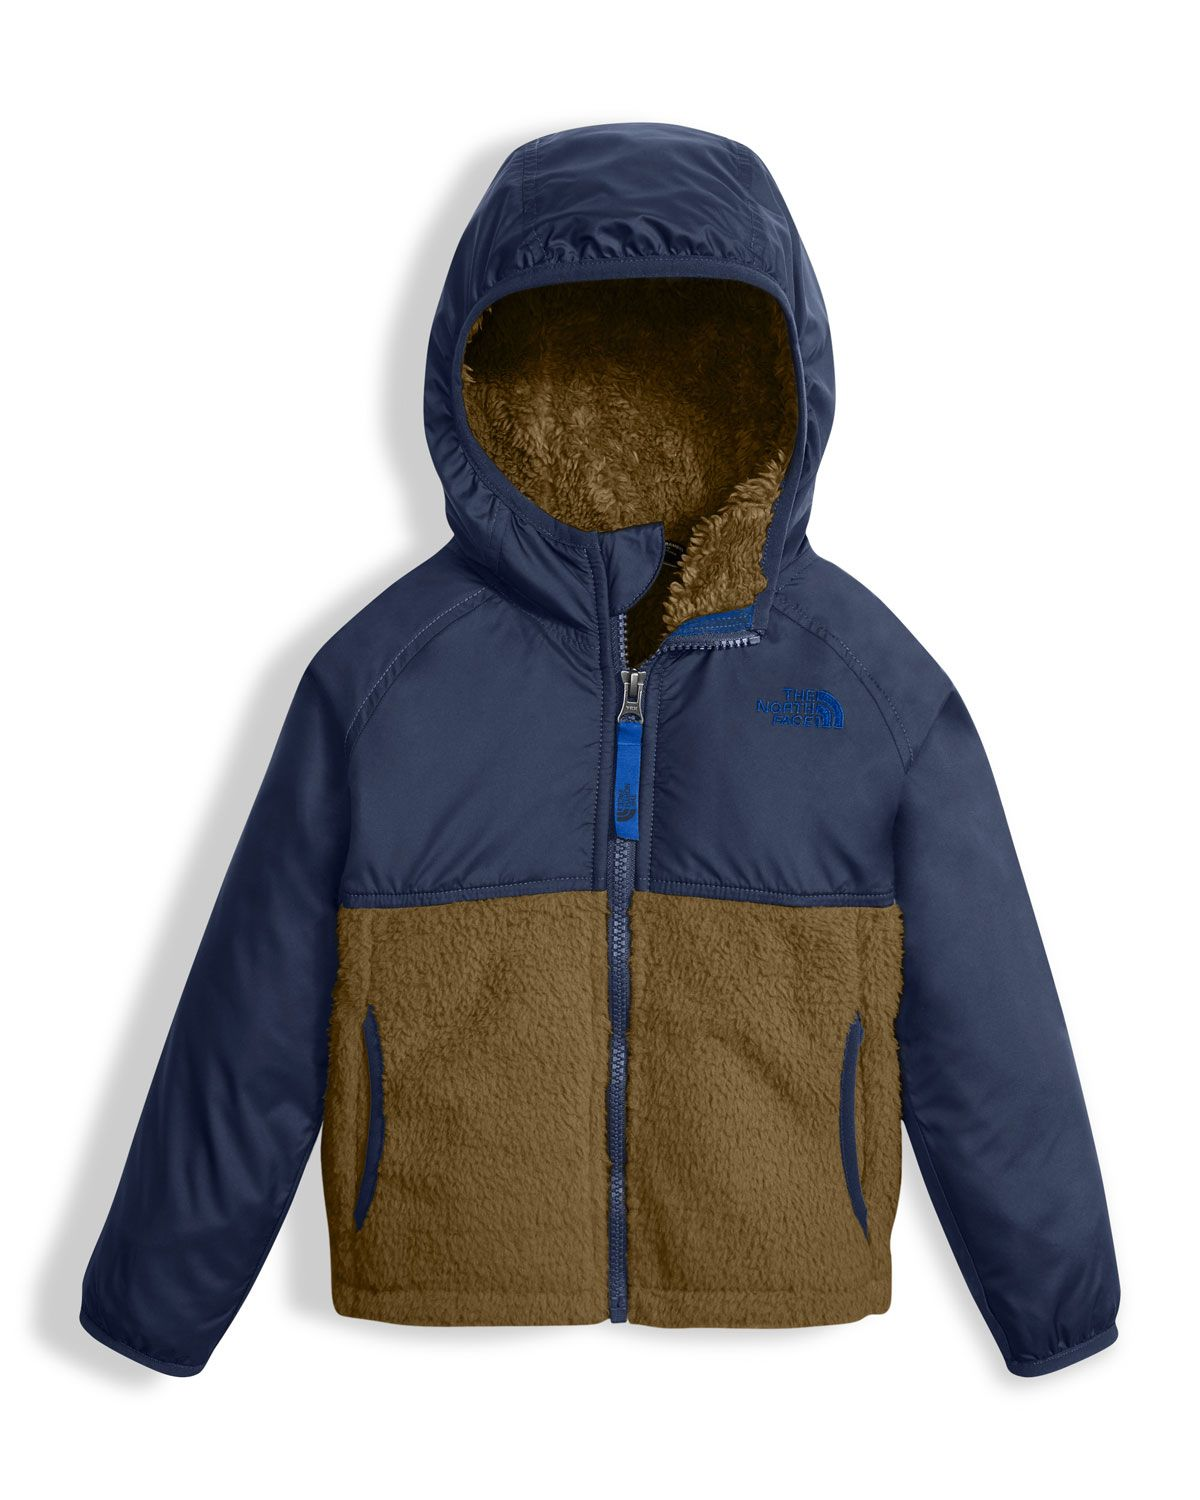 The North Face Sherparazo Taffeta Fleece Hooded Jacket Blue Size 2 4t Thenorthface Cloth Toddler Jacket Outdoor Outfit Toddler Jackets Boy [ 1500 x 1200 Pixel ]